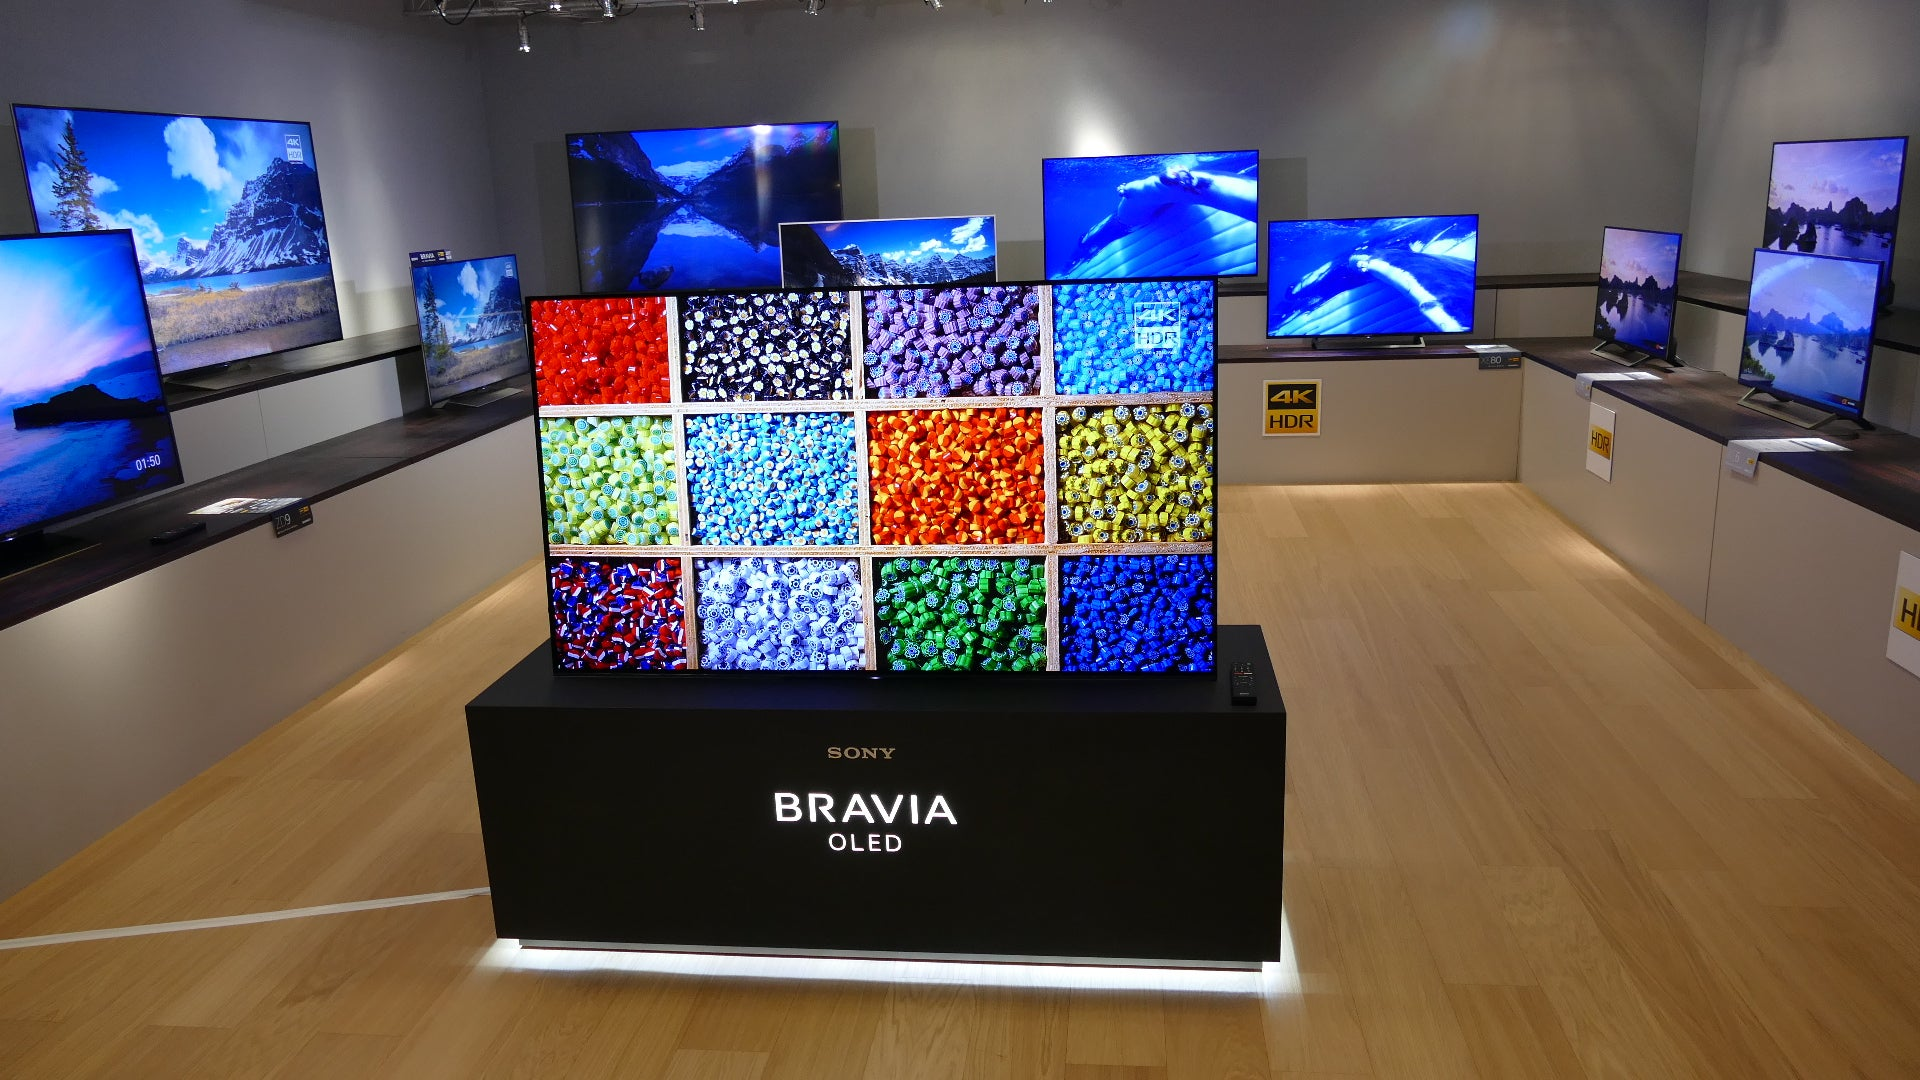 sony oled 65 inch tv. sony tvs 2017: what you need to know before buy bravia | trusted reviews oled 65 inch tv t